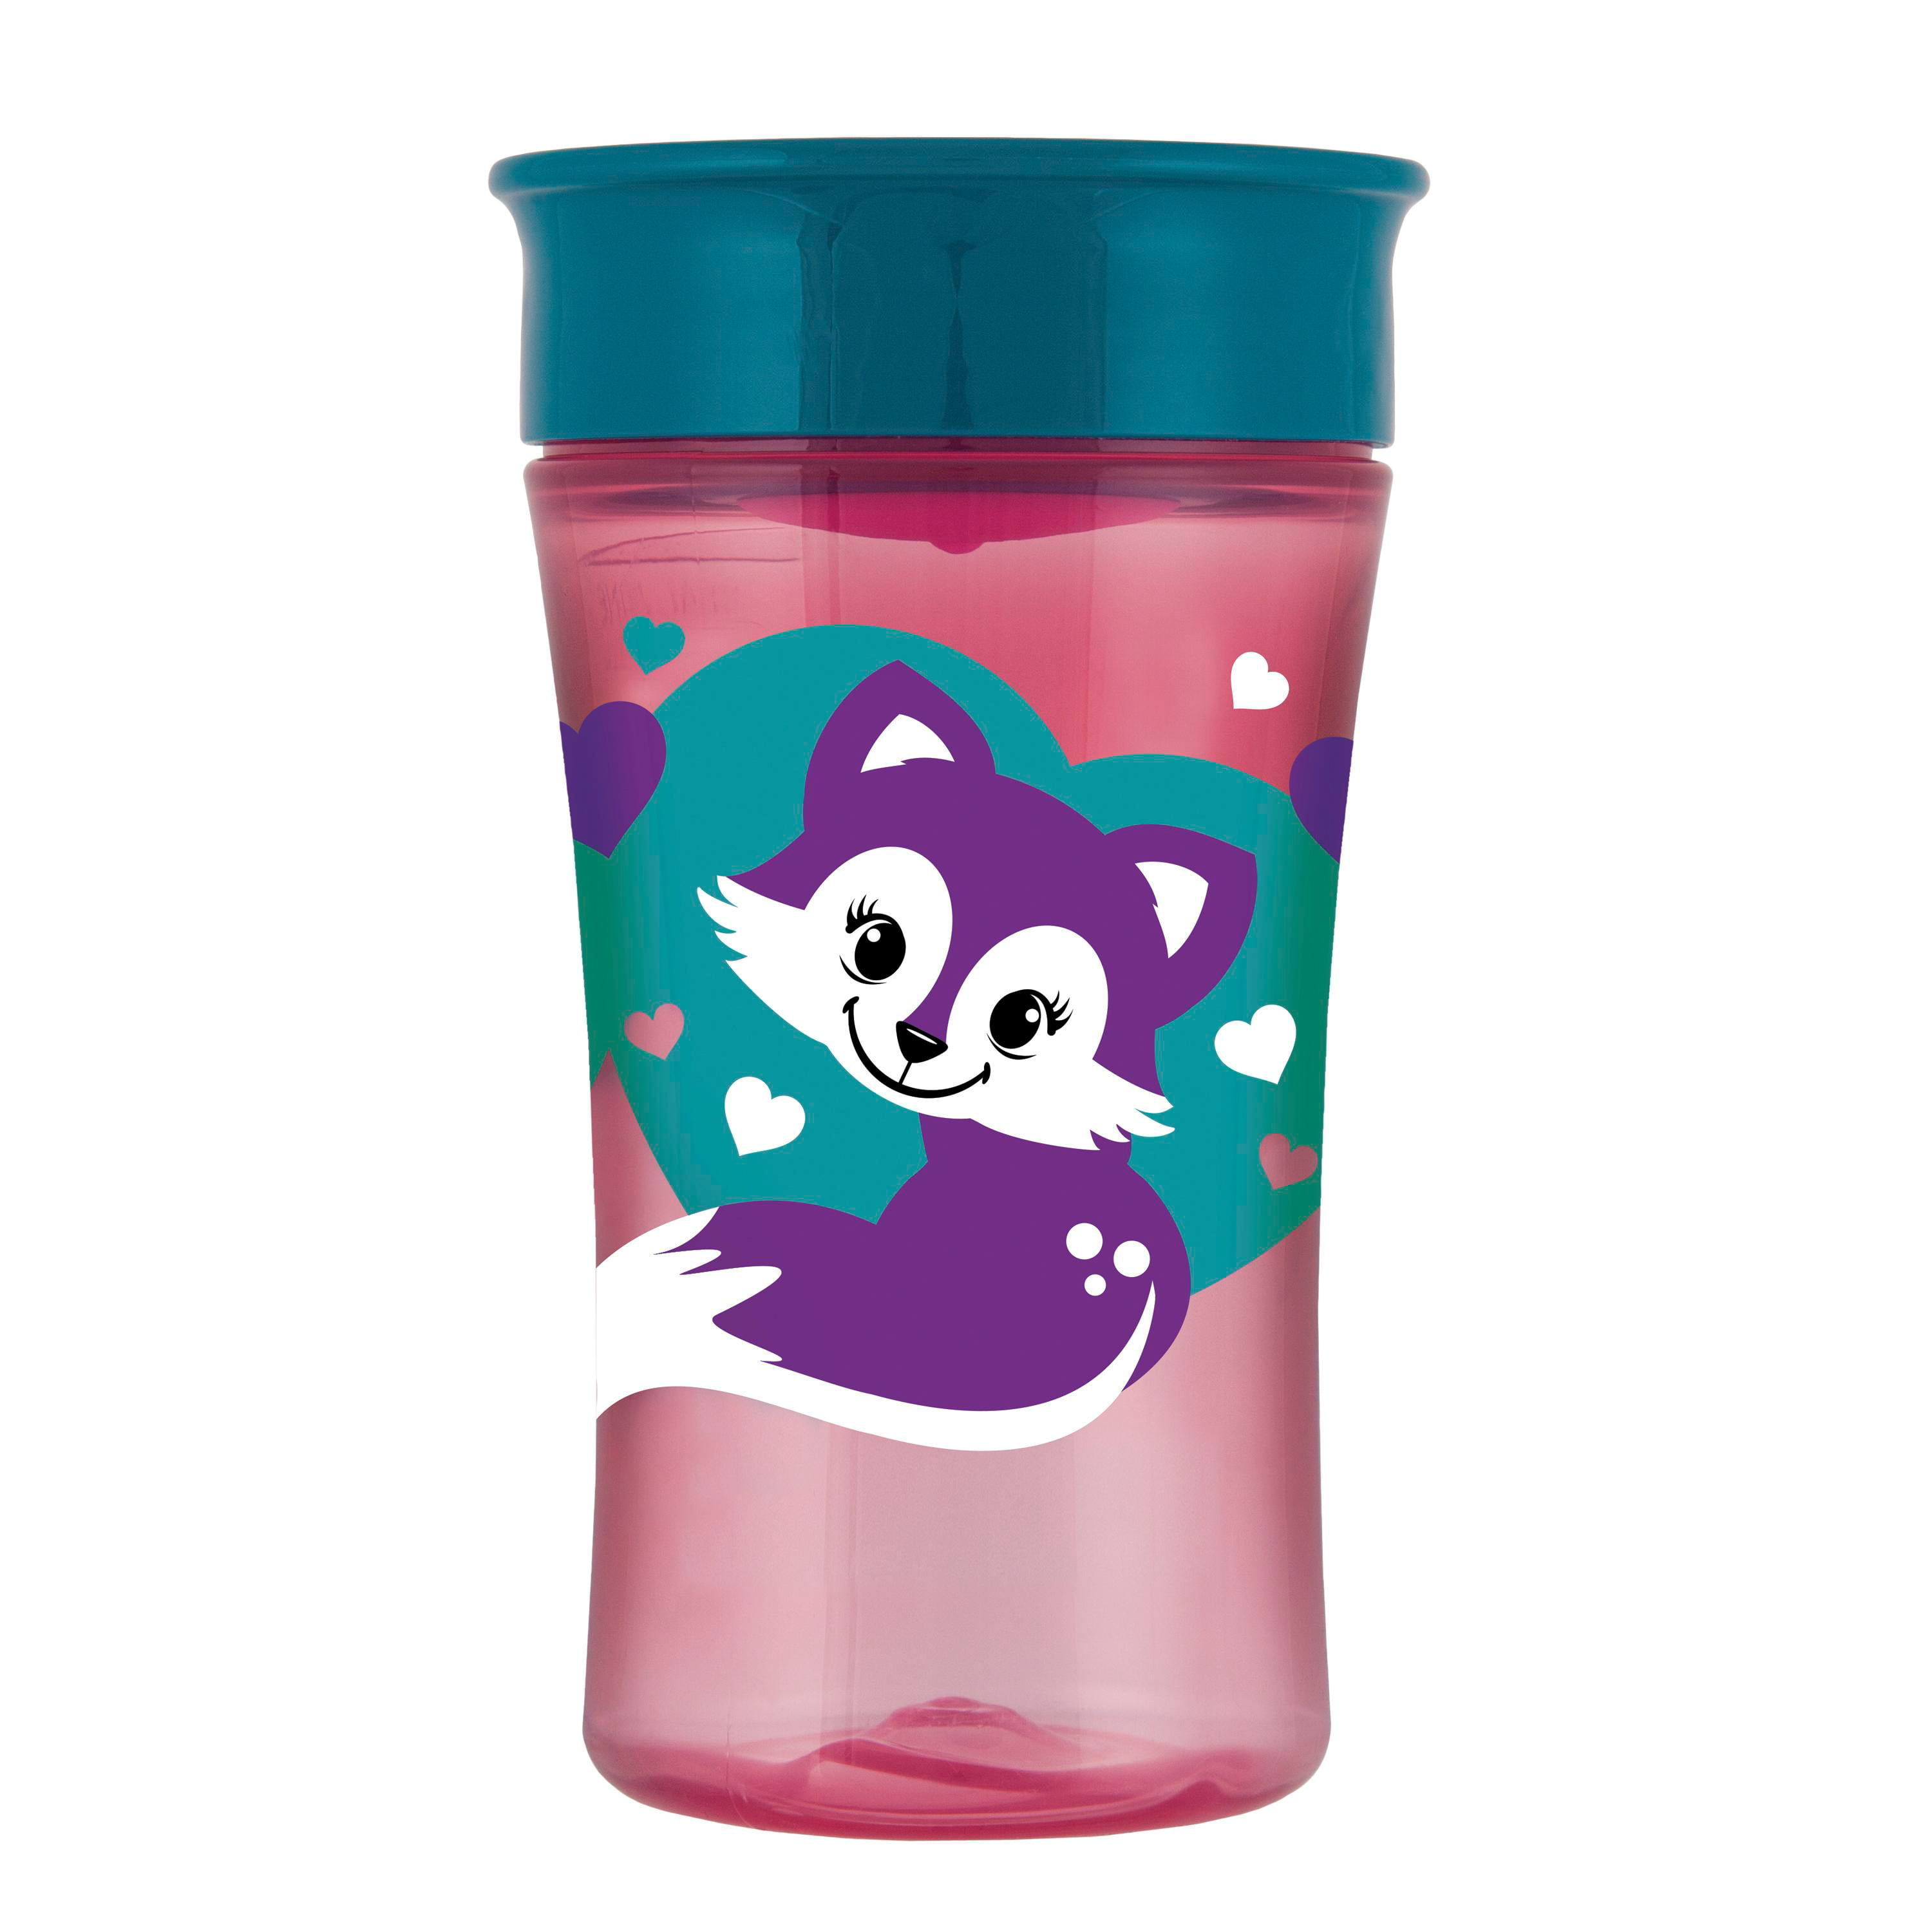 Mint Hedgehog 12+ Months BPA Free NUK Active Cup Drinking Cup Clip /& Protective Cap for Travelling Leak-Proof Drinking Spout 300 ml